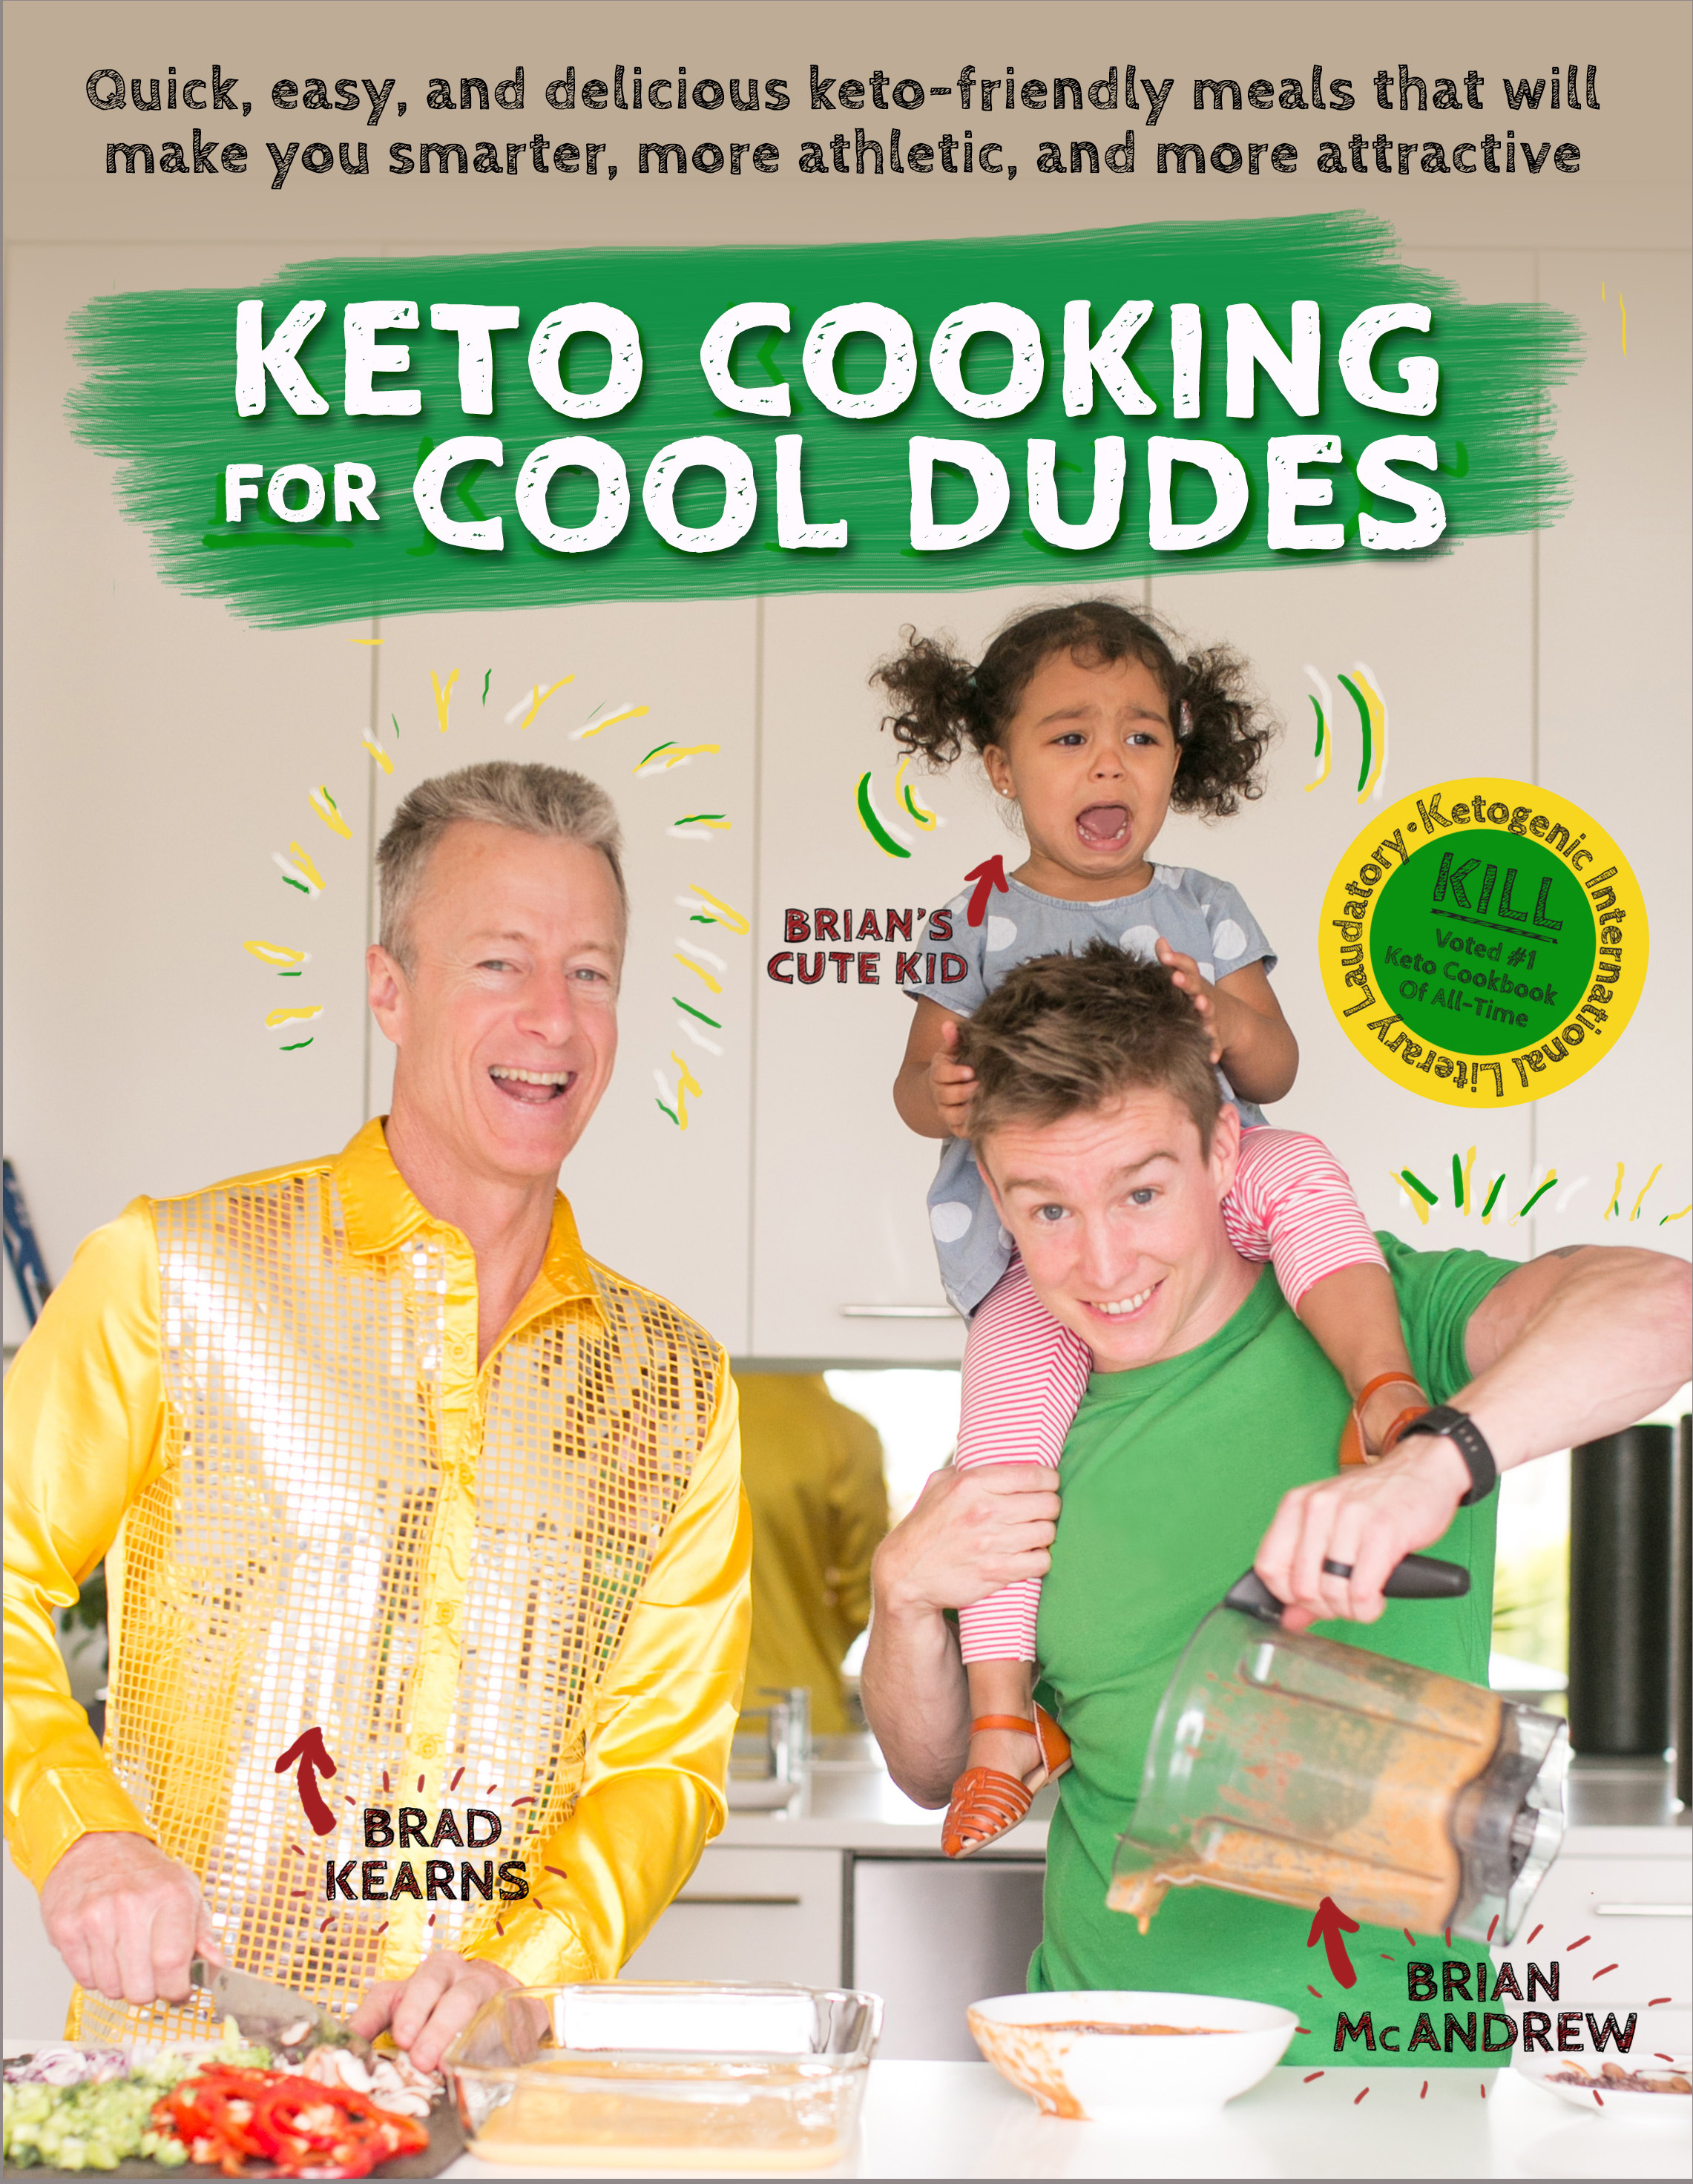 Keto Cooking for Cool Dudes